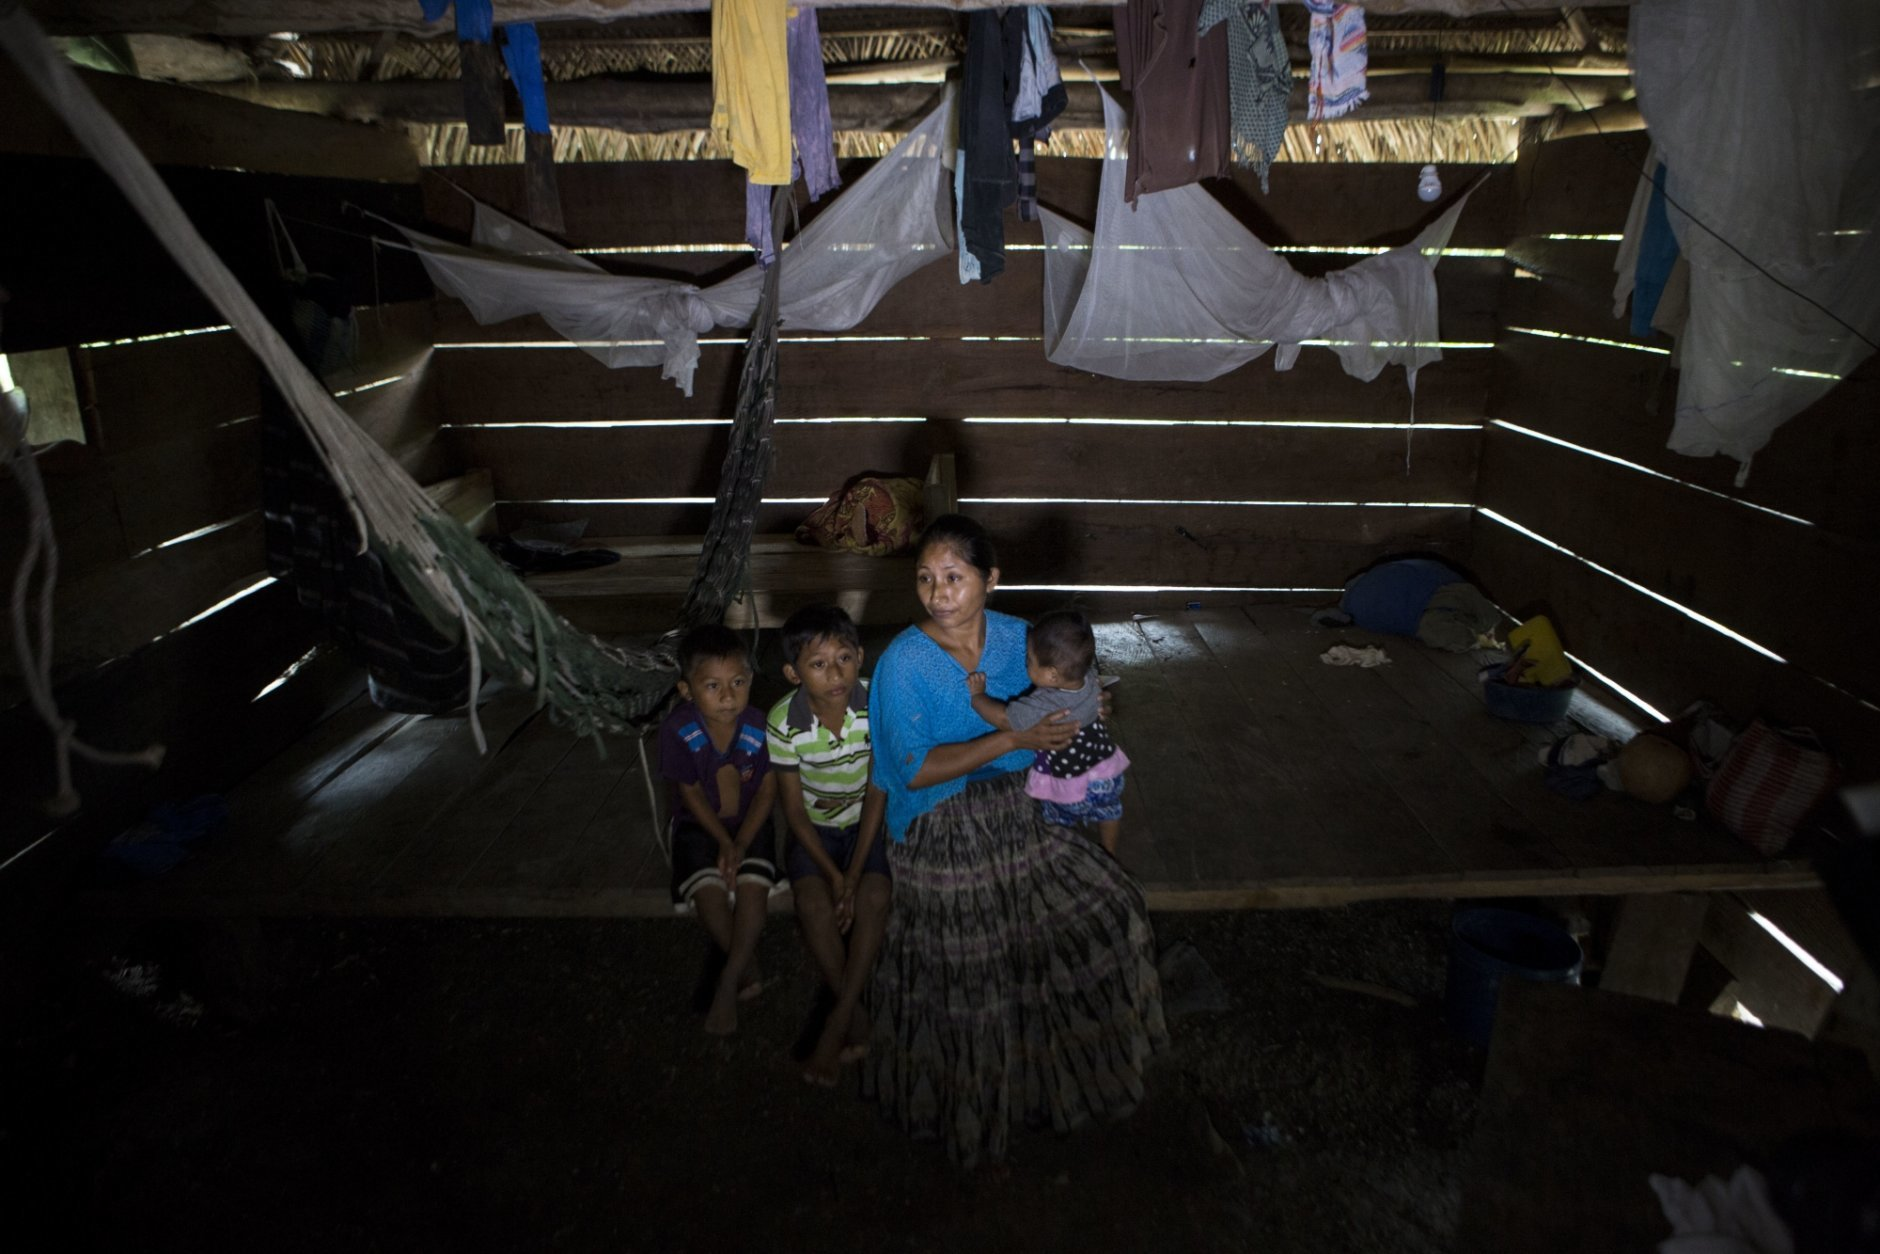 Claudia Maquin, 27, sits on a wooden bed while she answers questions from journalists with her three children, Elvis Radamel Aquiles Caal Maquin, 5, left, Abdel Johnatan Domingo Caal Maquin, 9, center, Angela Surely Mariela Caal Maquin, 6 months, right, in Raxruha, Guatemala, on Saturday, Dec. 15, 2018. Claudia Maquin's daughter, 7-year old Jakelin Amei Rosmery Caal, died in a Texas hospital, two days after being taken into custody by border patrol agents in a remote stretch of New Mexico desert. (AP Photo/Oliver de Ros)